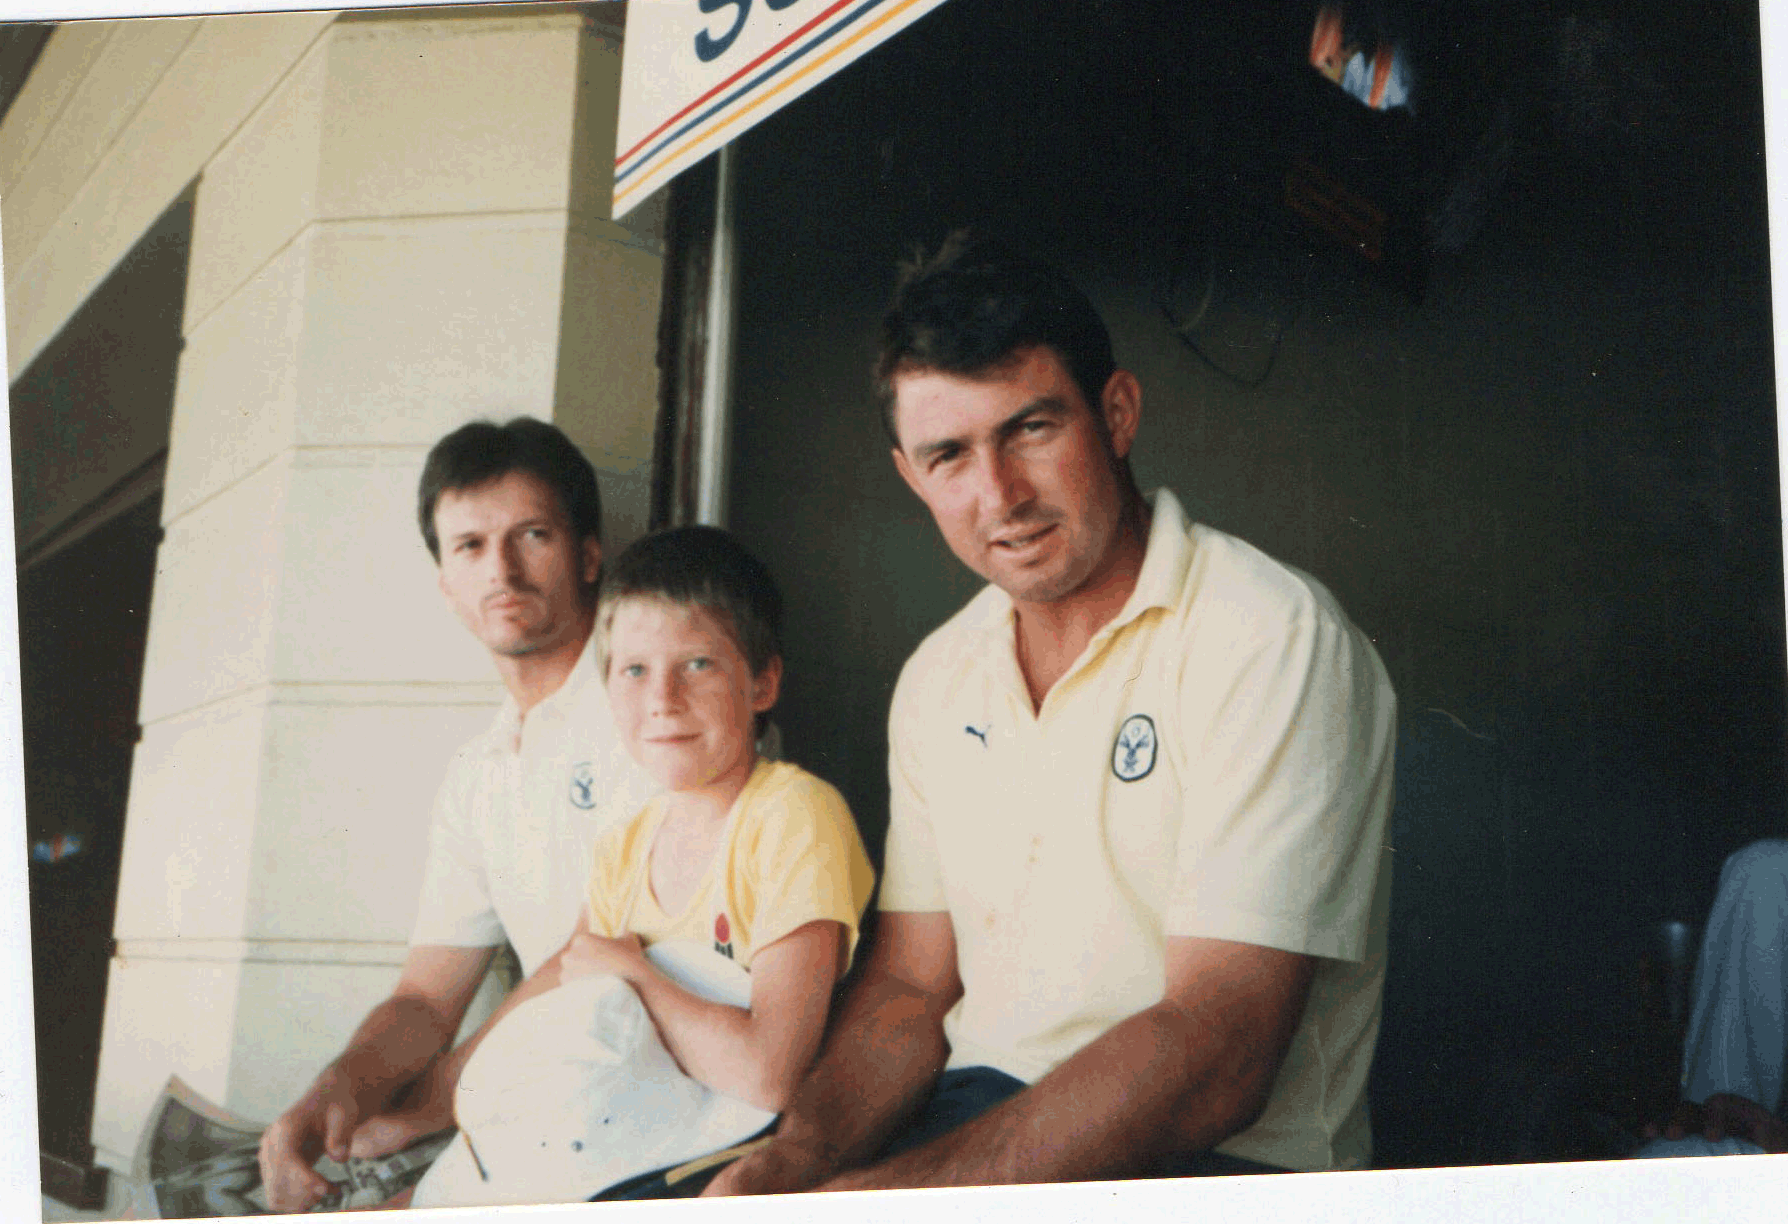 Luke Remfry, Steve Waugh/Geoff Marsh